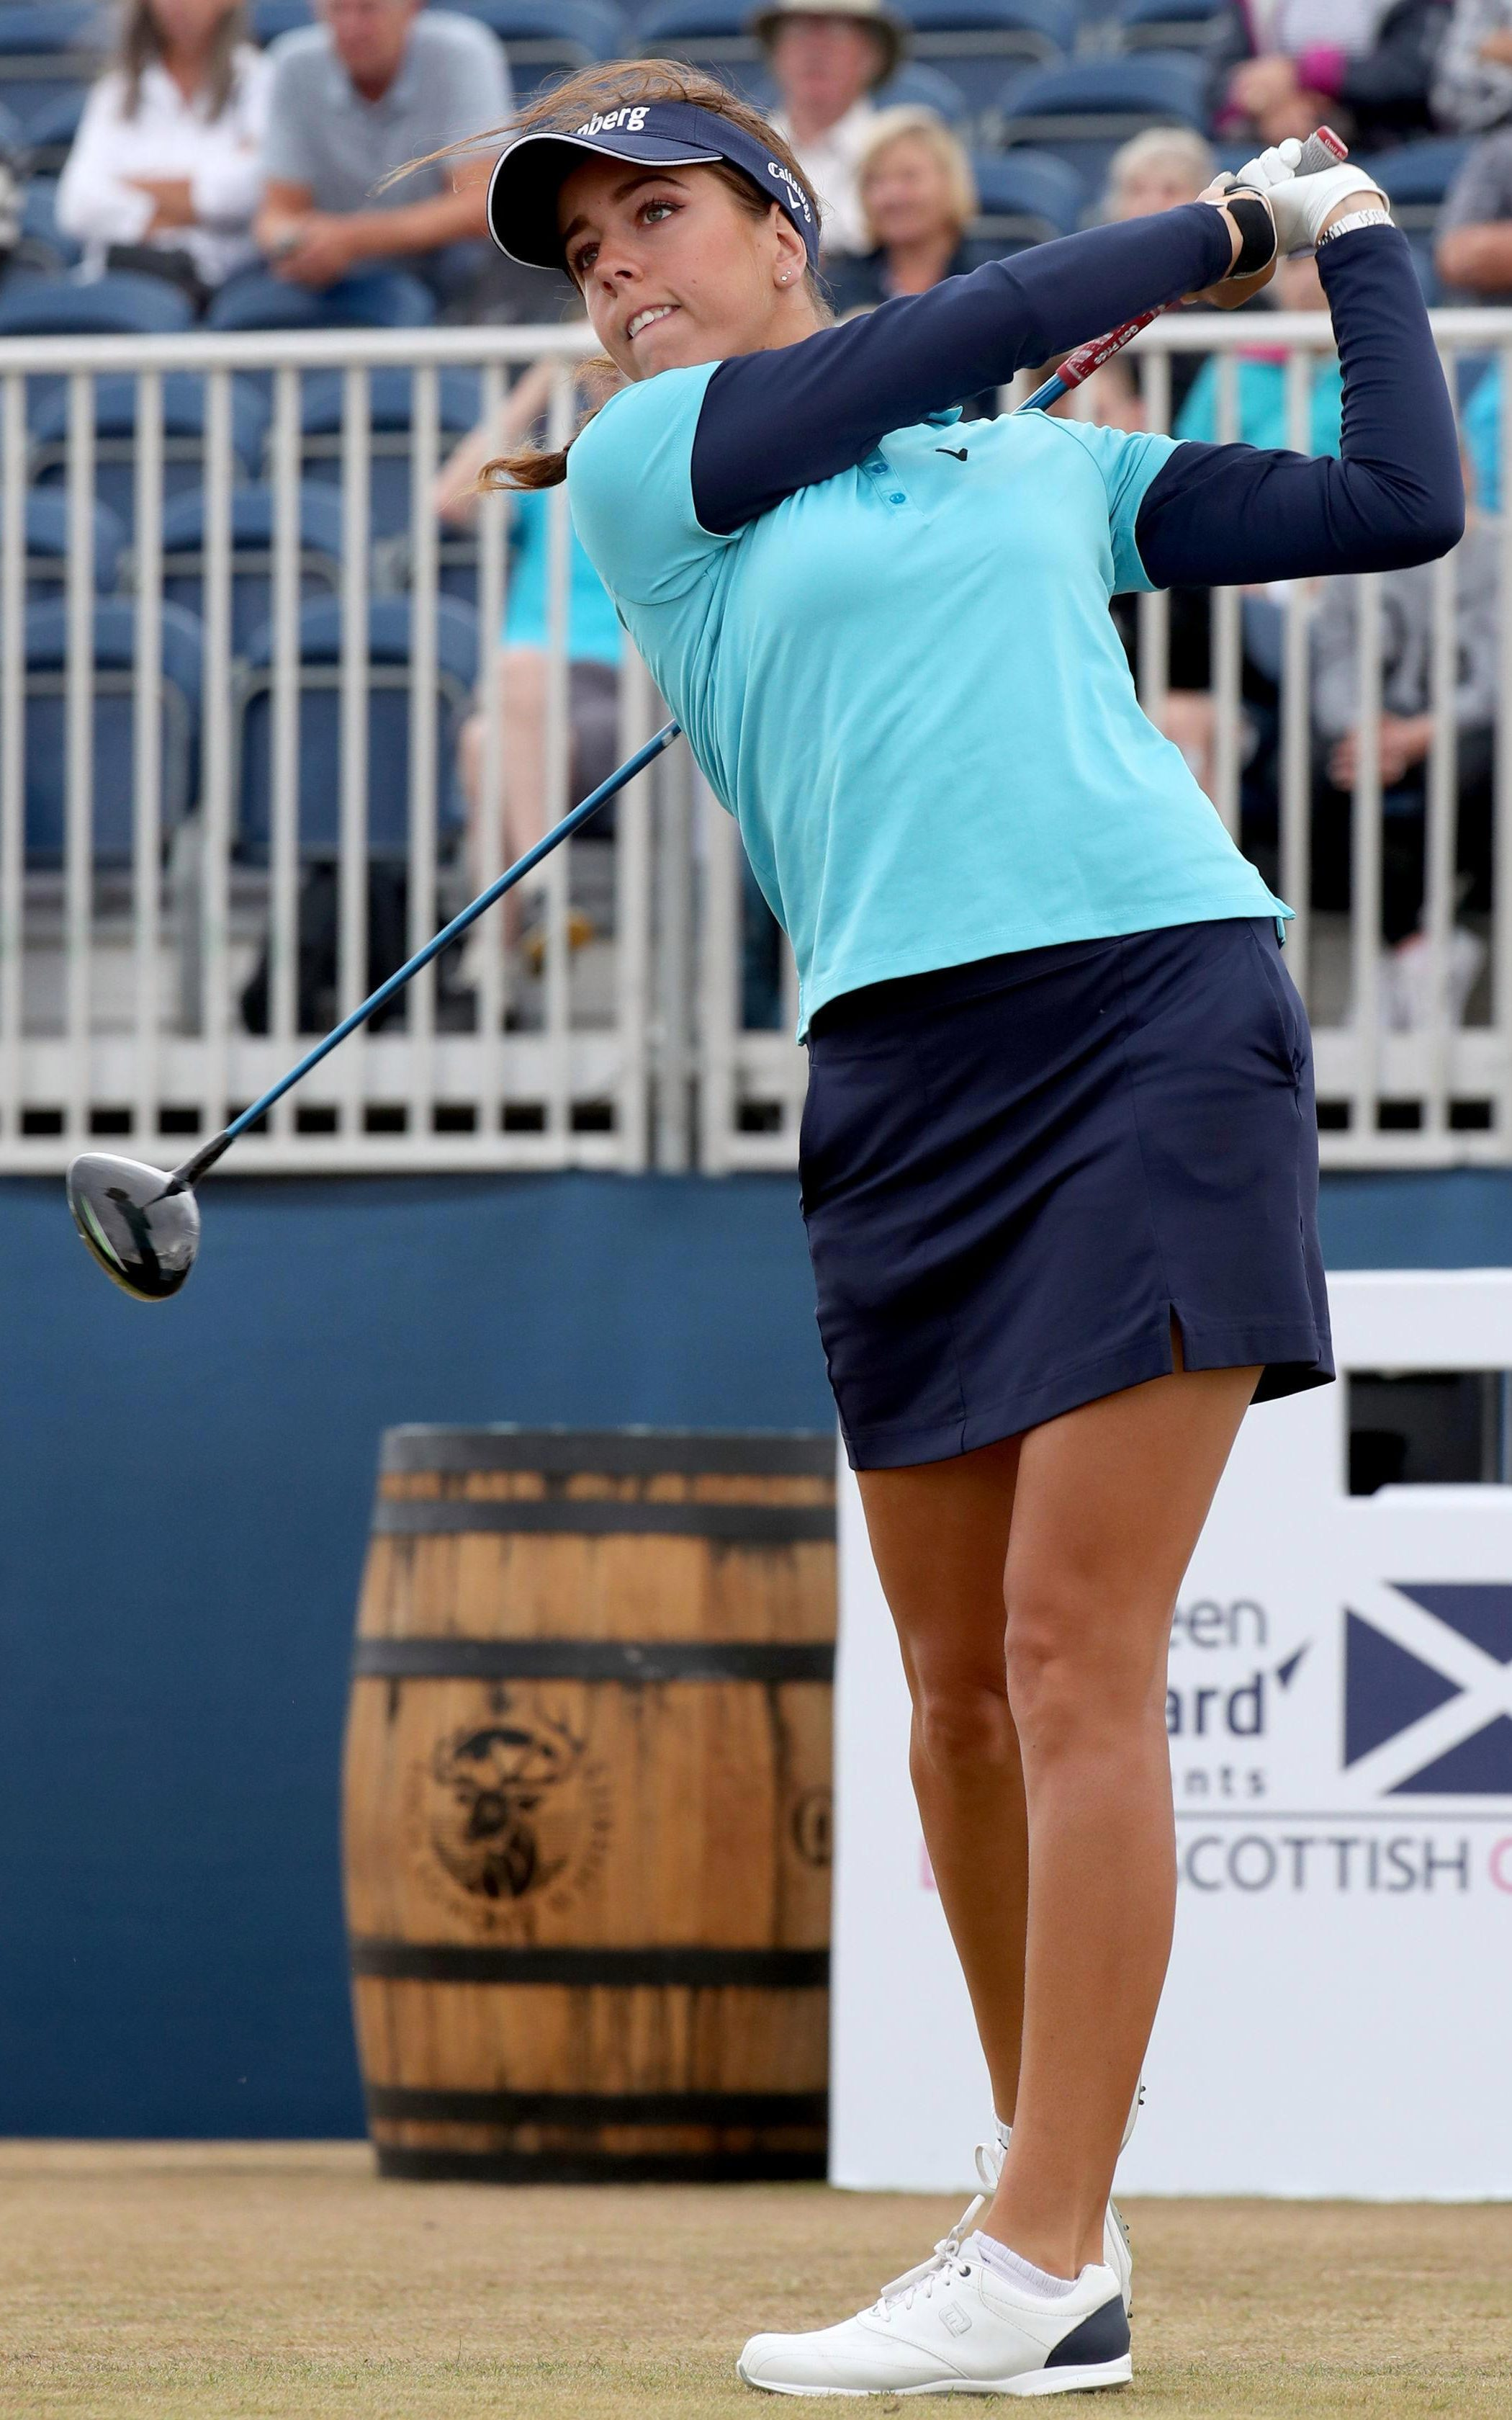 Davies will play alongside playing with British Open champion Georgia Hall